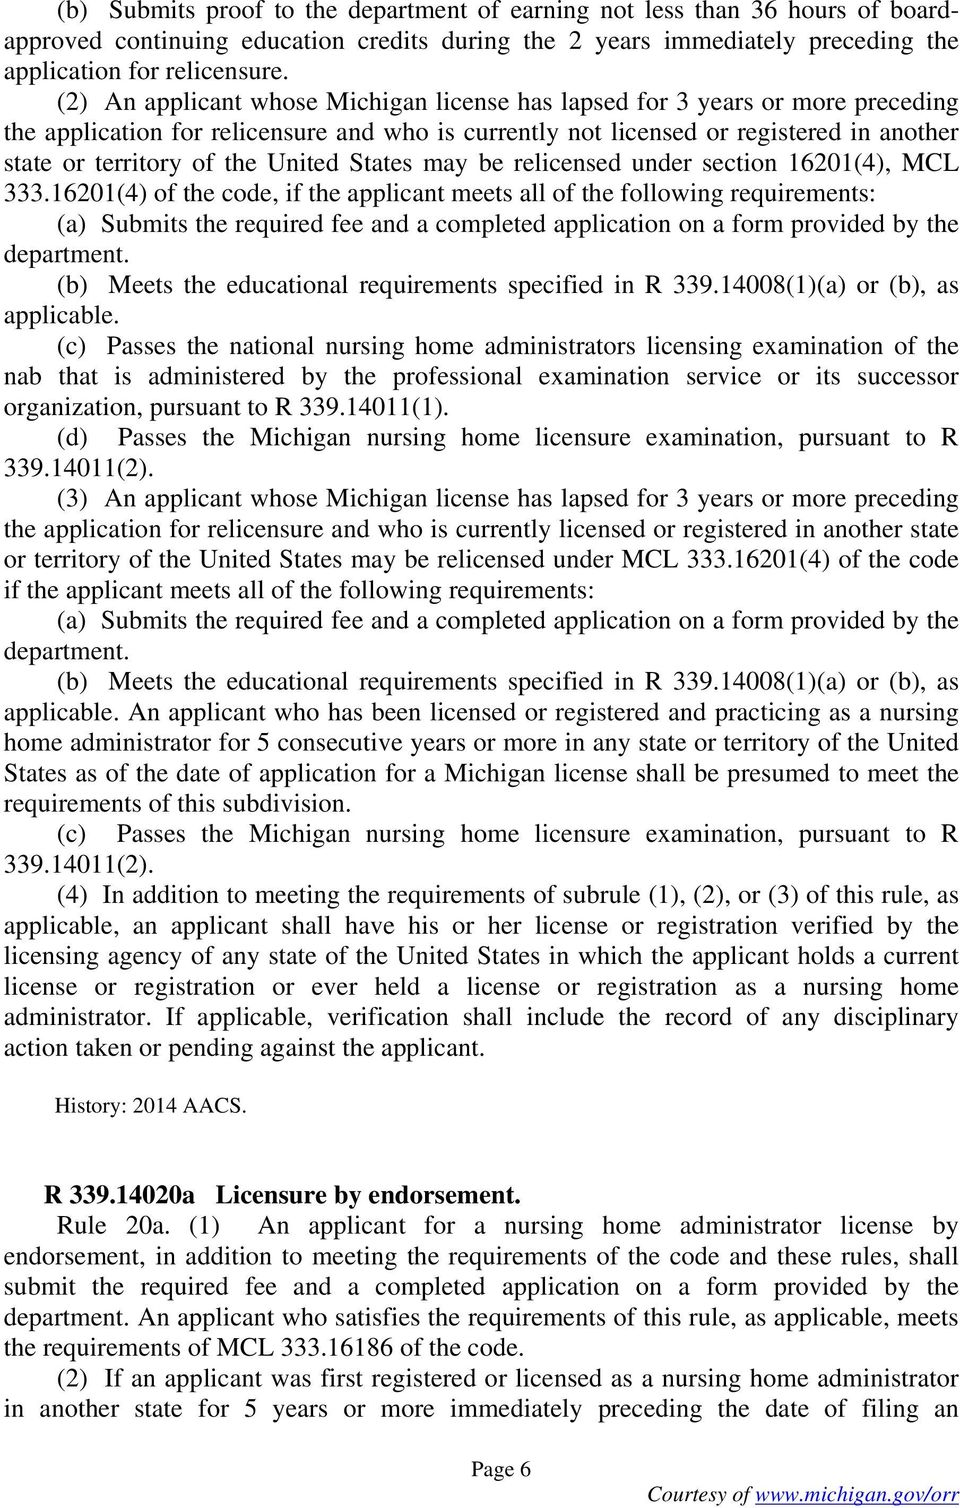 United States may be relicensed under section 16201(4), MCL 333.